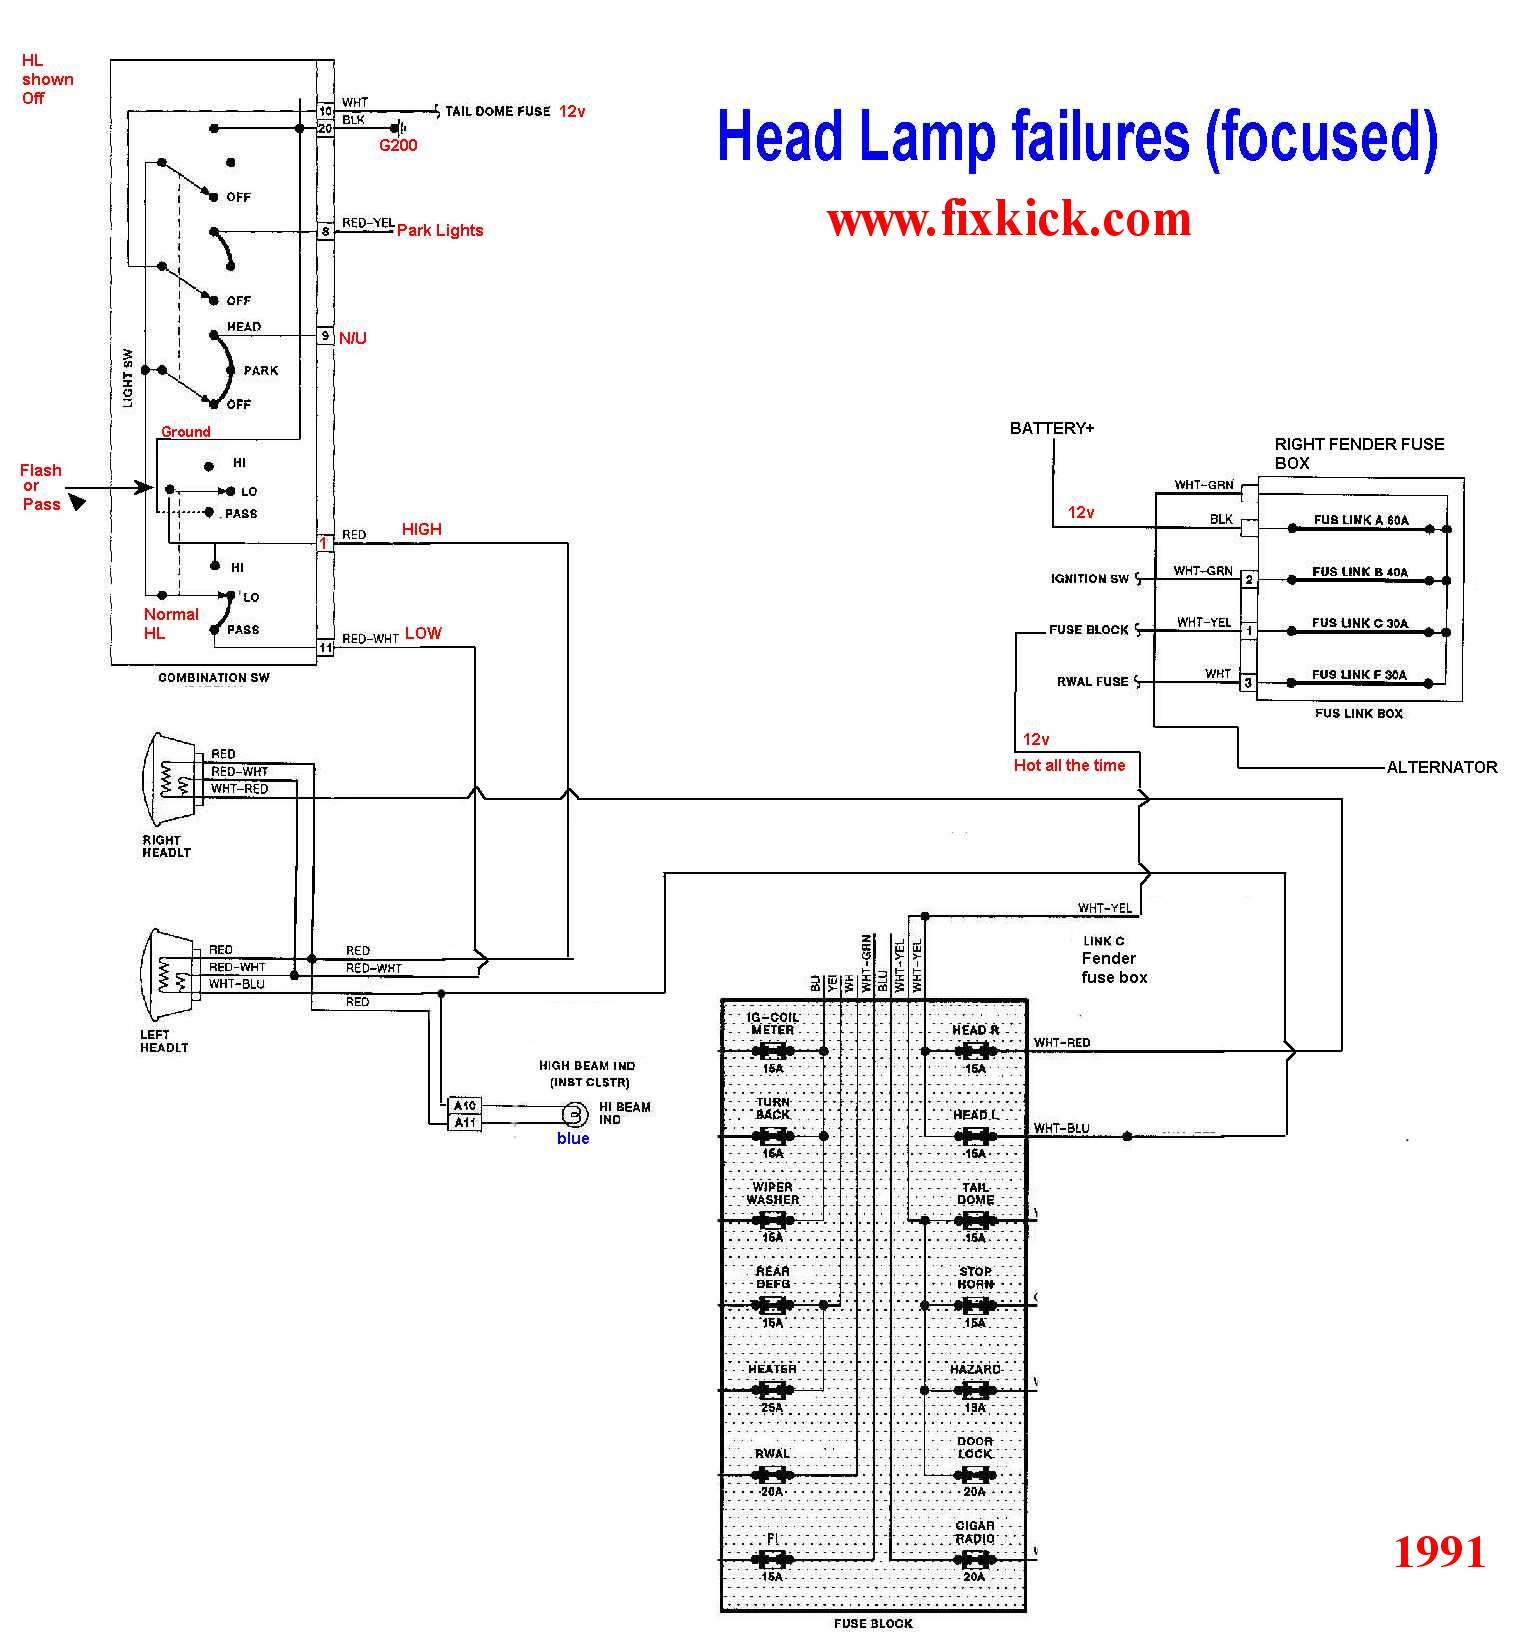 HL1A geo tracker wiring diagram 92 geo tracker wiring diagram \u2022 free 2001 Chevy Tracker Manual Online at highcare.asia